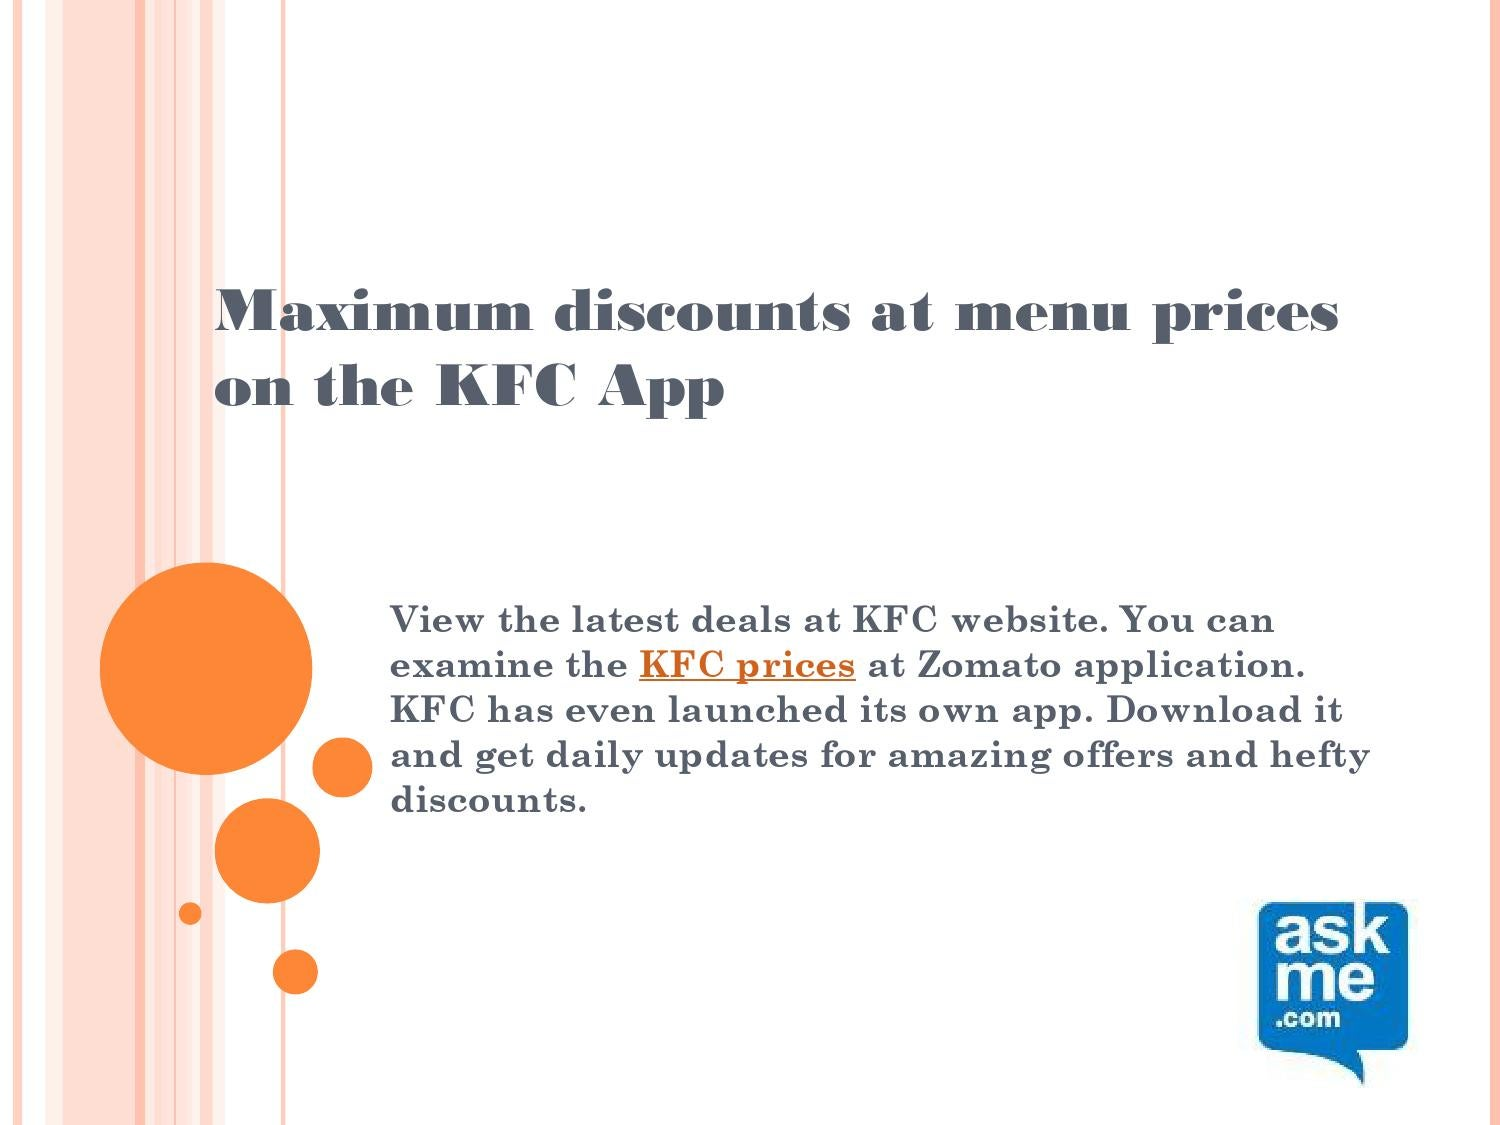 Maximum discounts at menu prices on the kfc app by Ask Me